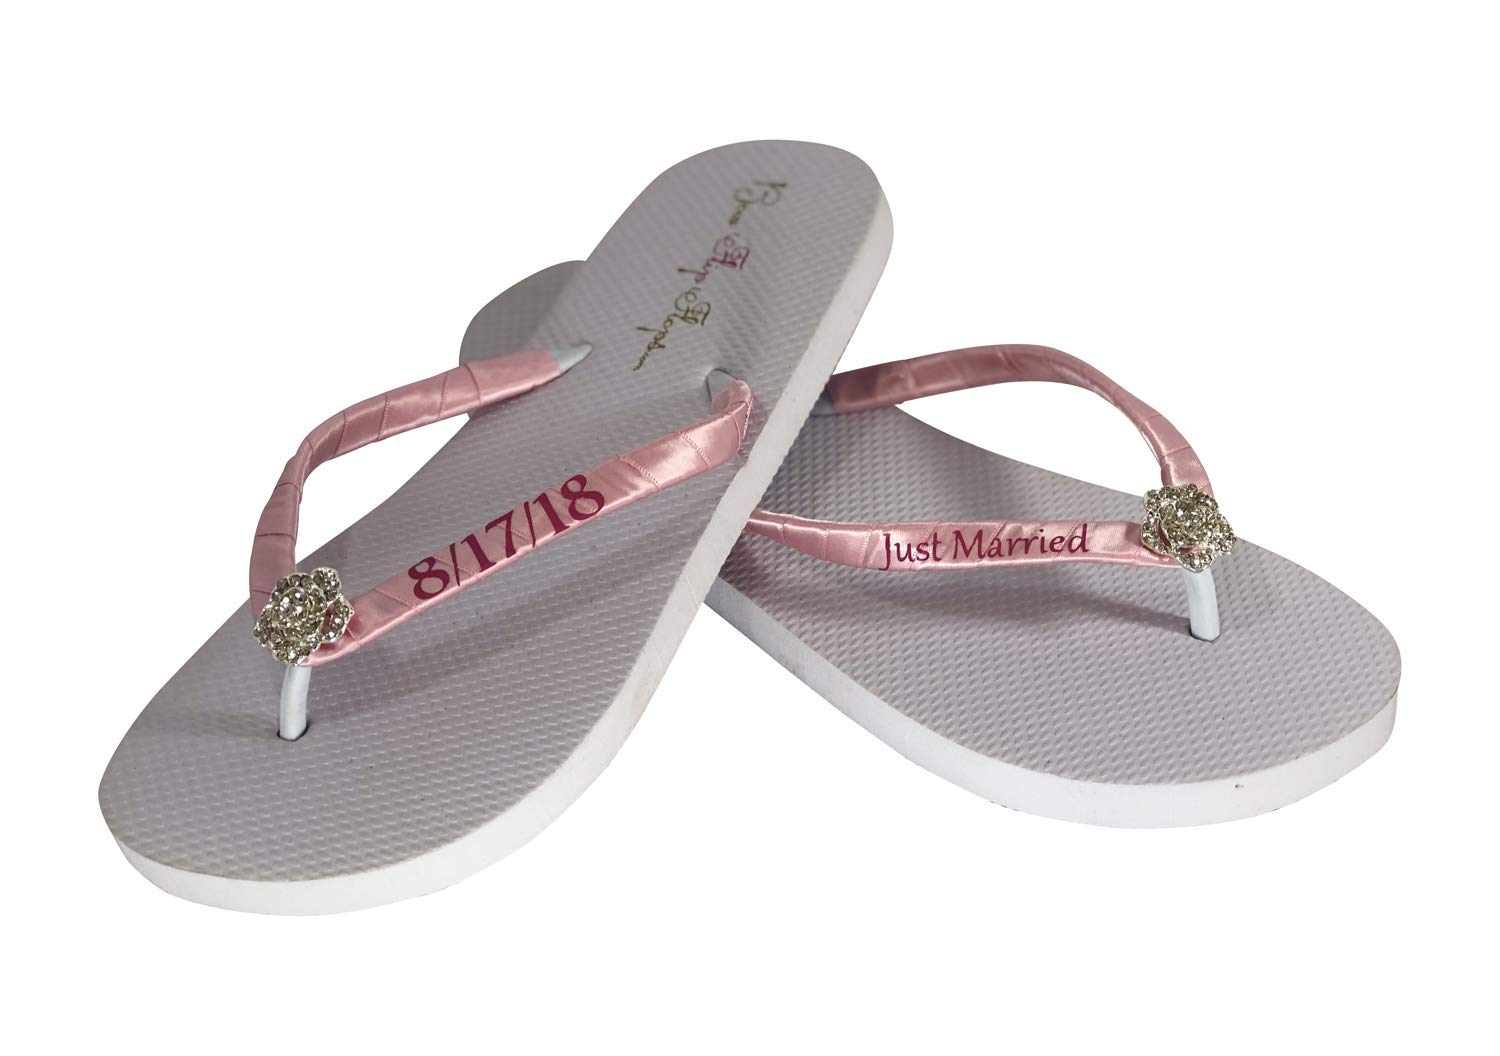 0f7334de8 Get Quotations · Just Married Wedding Flip Flops -Flat or Wedge Heel -  Ivory or White - Wedding